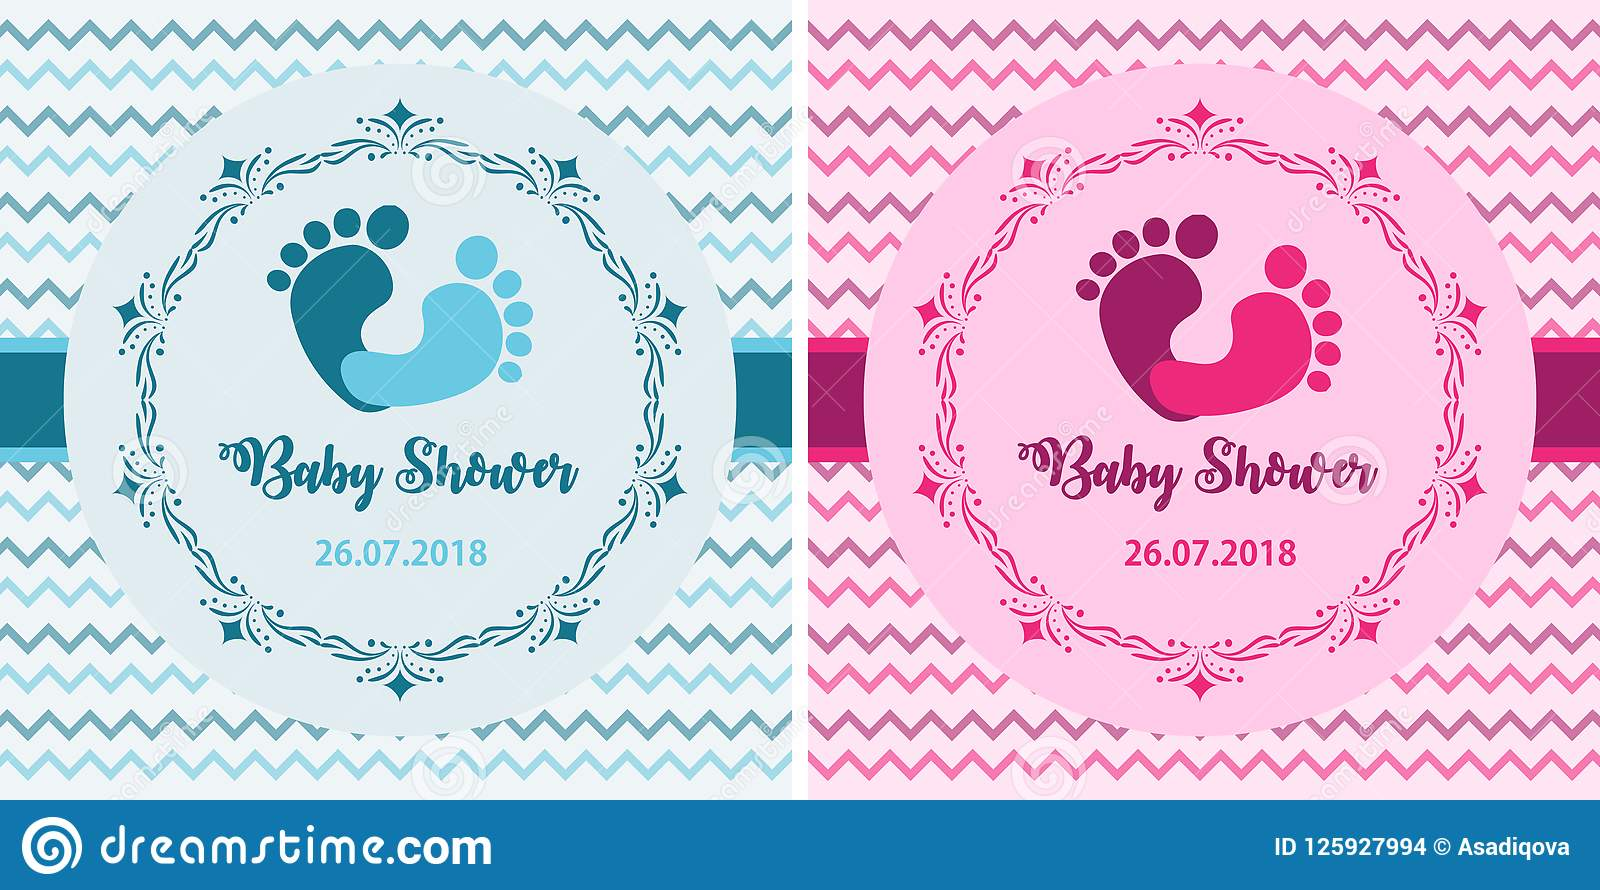 Baby Shower Set Cute Invitation Cards Design For Baby